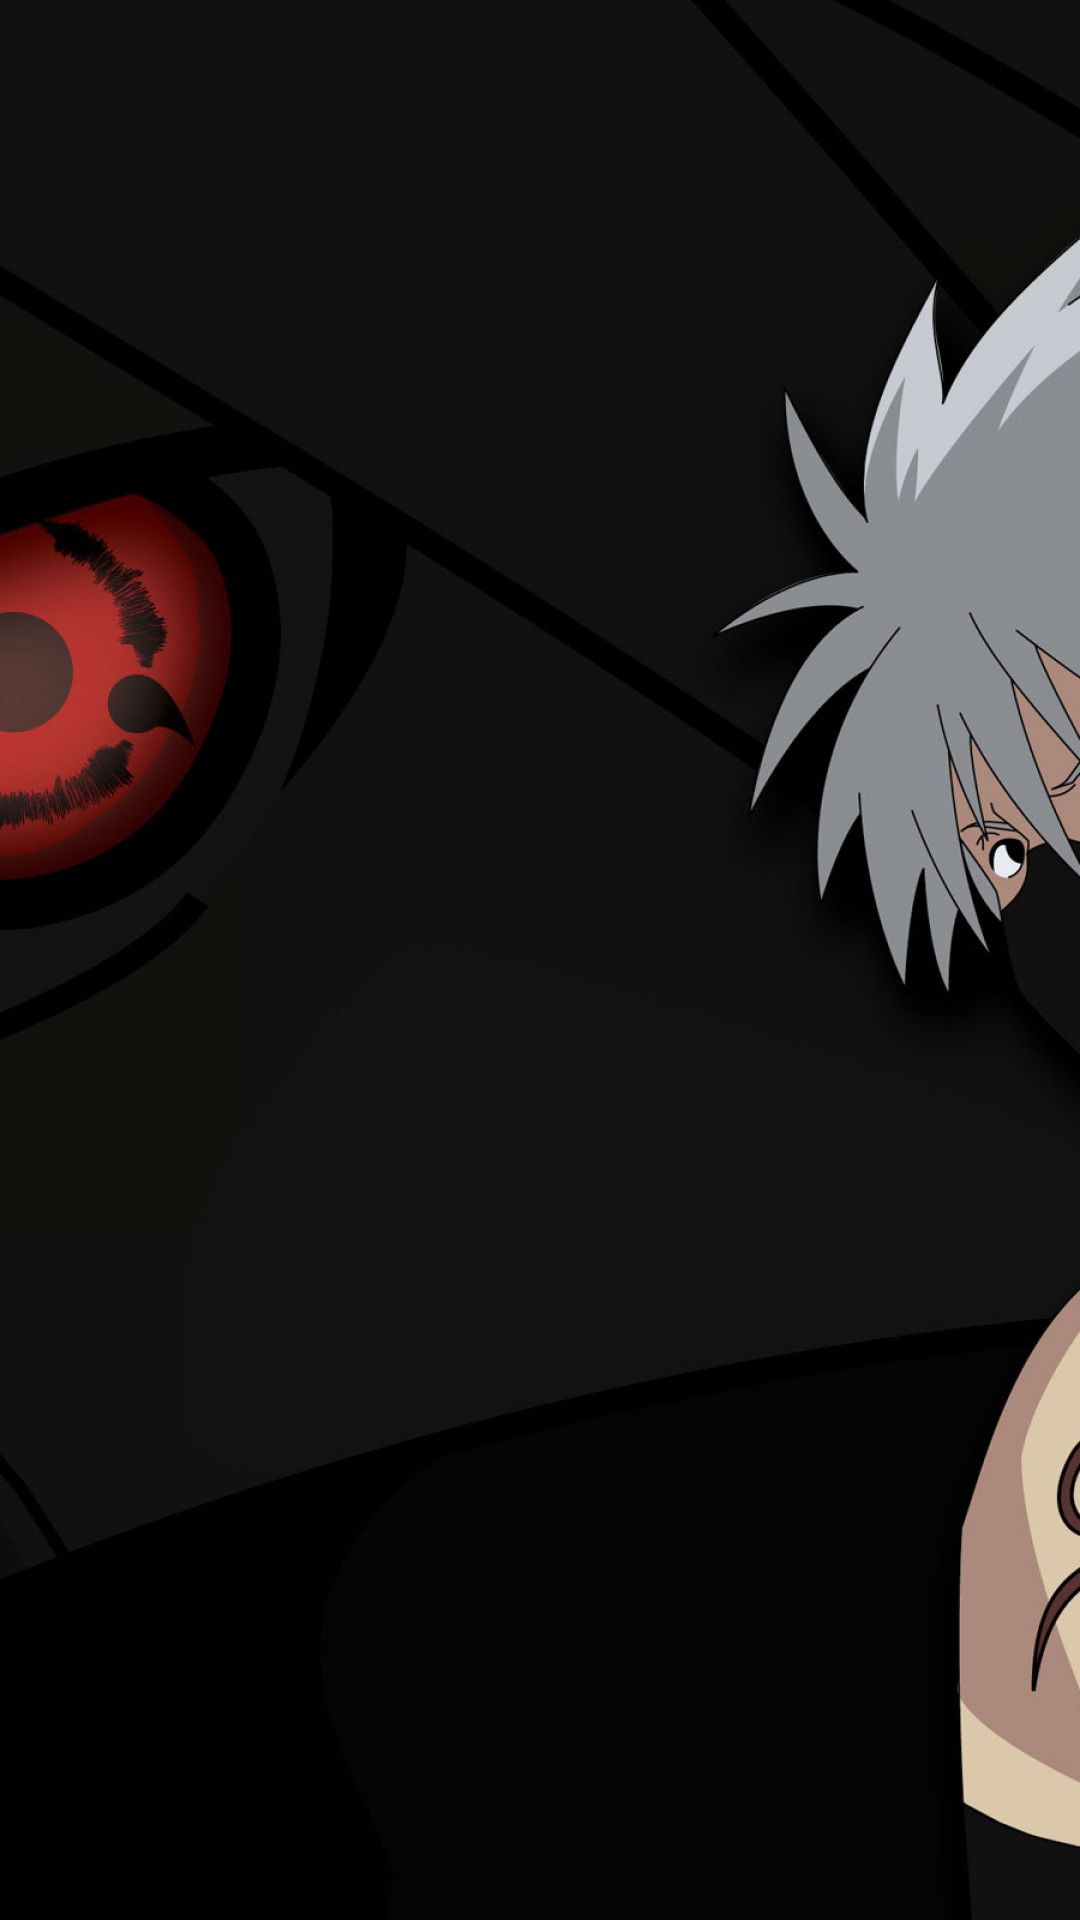 Naruto Kakashi Iphone Wallpapers Top Free Naruto Kakashi Iphone Backgrounds Wallpaperaccess